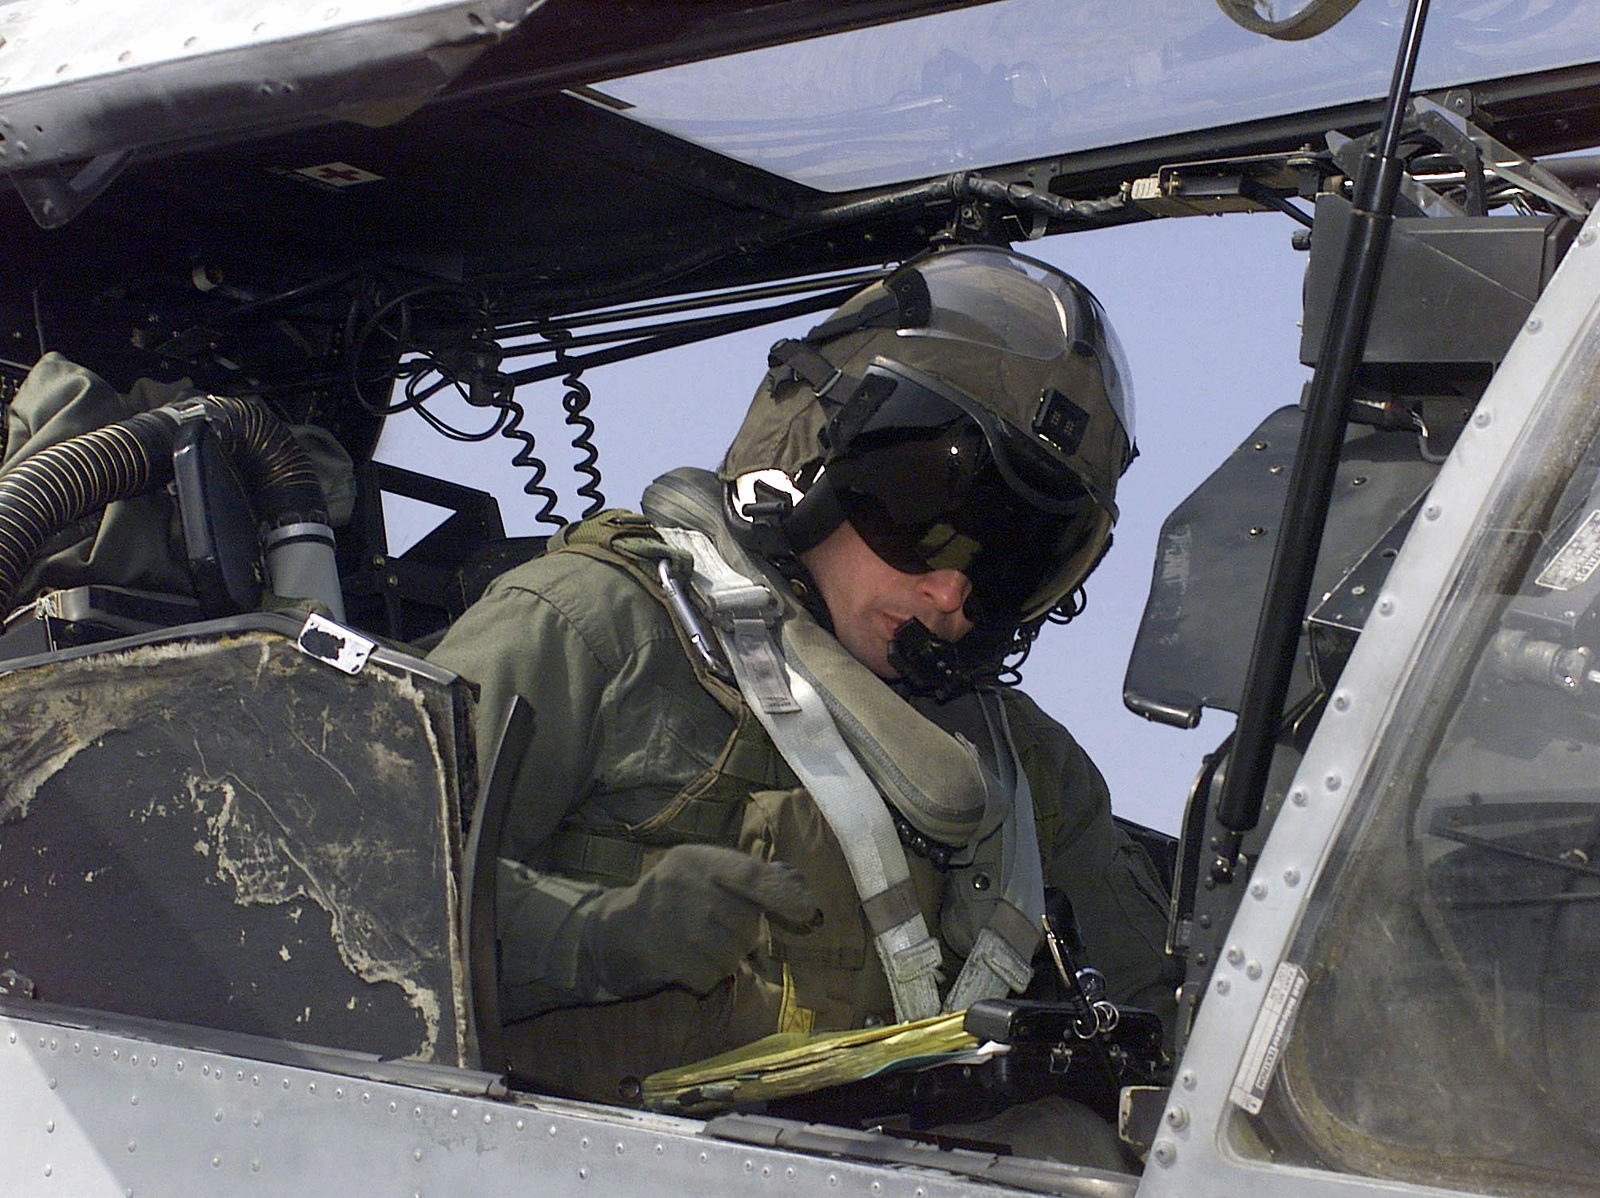 Looking over the last minute details of the days flight, Major John Fitz-Patrick a Marine Light Attack Helicopter Squadron-267 (HMLA-267), Camp Pendleton, California, AH-1W Cobra Helicopter pilot goes down the flight checklist before takeoff during exercise MILLENNIUM EDGE on Osan Air Base, Osan, Korea. MILLENNIUM EDGE is a joint and combined training exercise conducted in the Republic of Korea with assets from Marine and Air Force units. The exercise gives both the pilots and ground crew members a chance to operate in an unfamiliar place with different types equipment